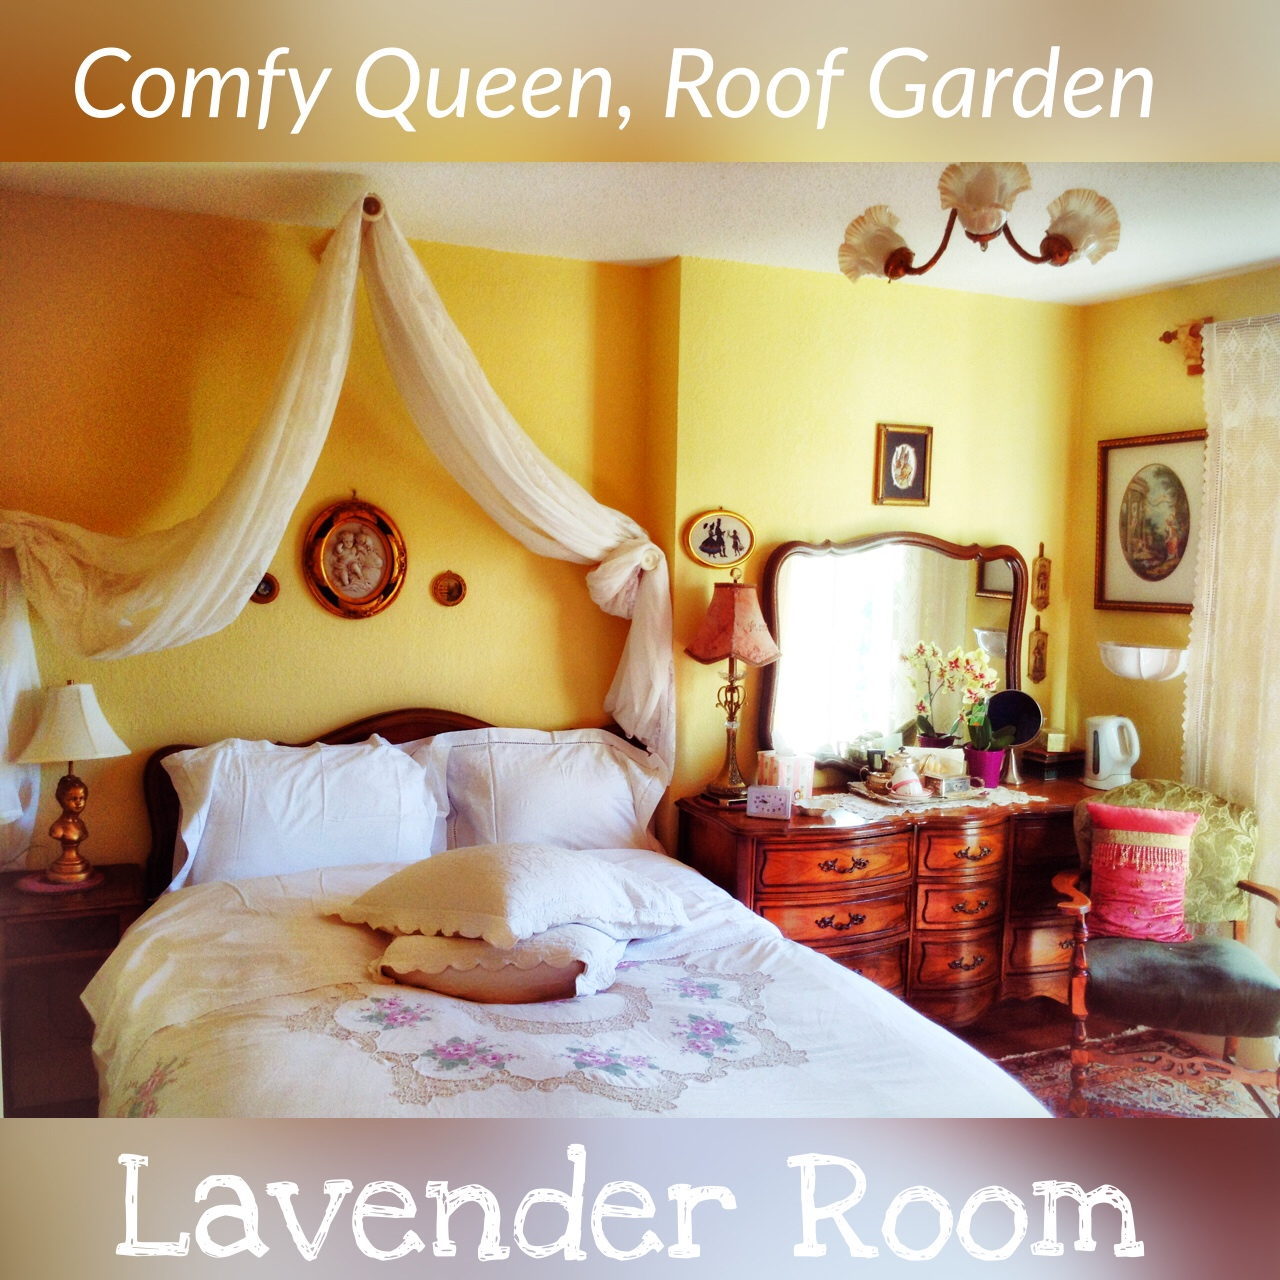 Victoria BC Canada Lodging Lavender4 Room Gingerbread Cottage Bed and Breakfast